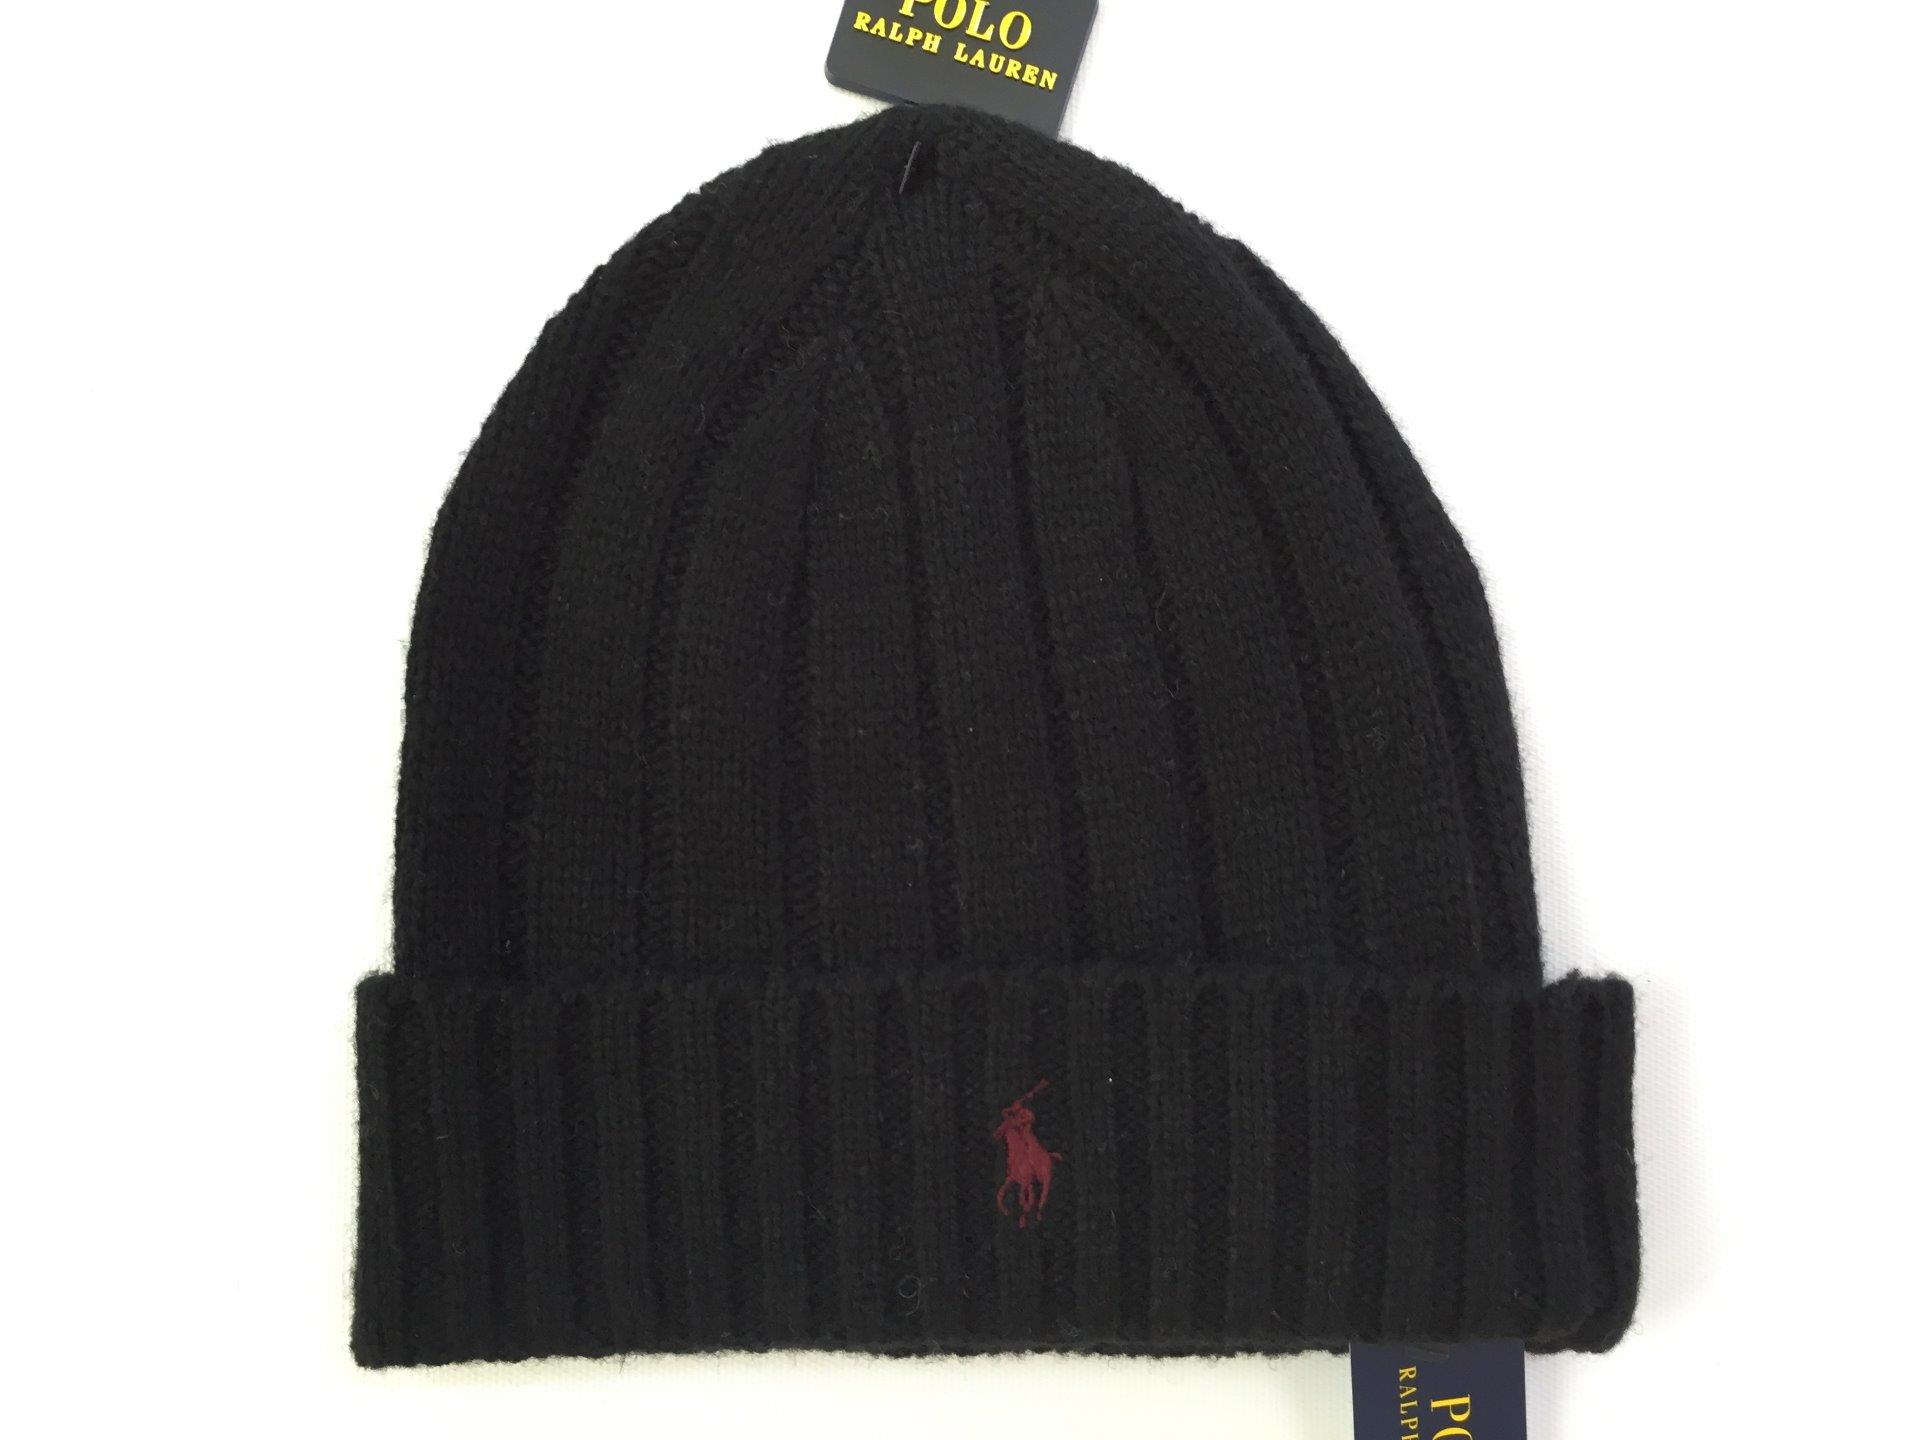 Find great deals on eBay for polo ralph lauren winter hat. Shop with confidence.